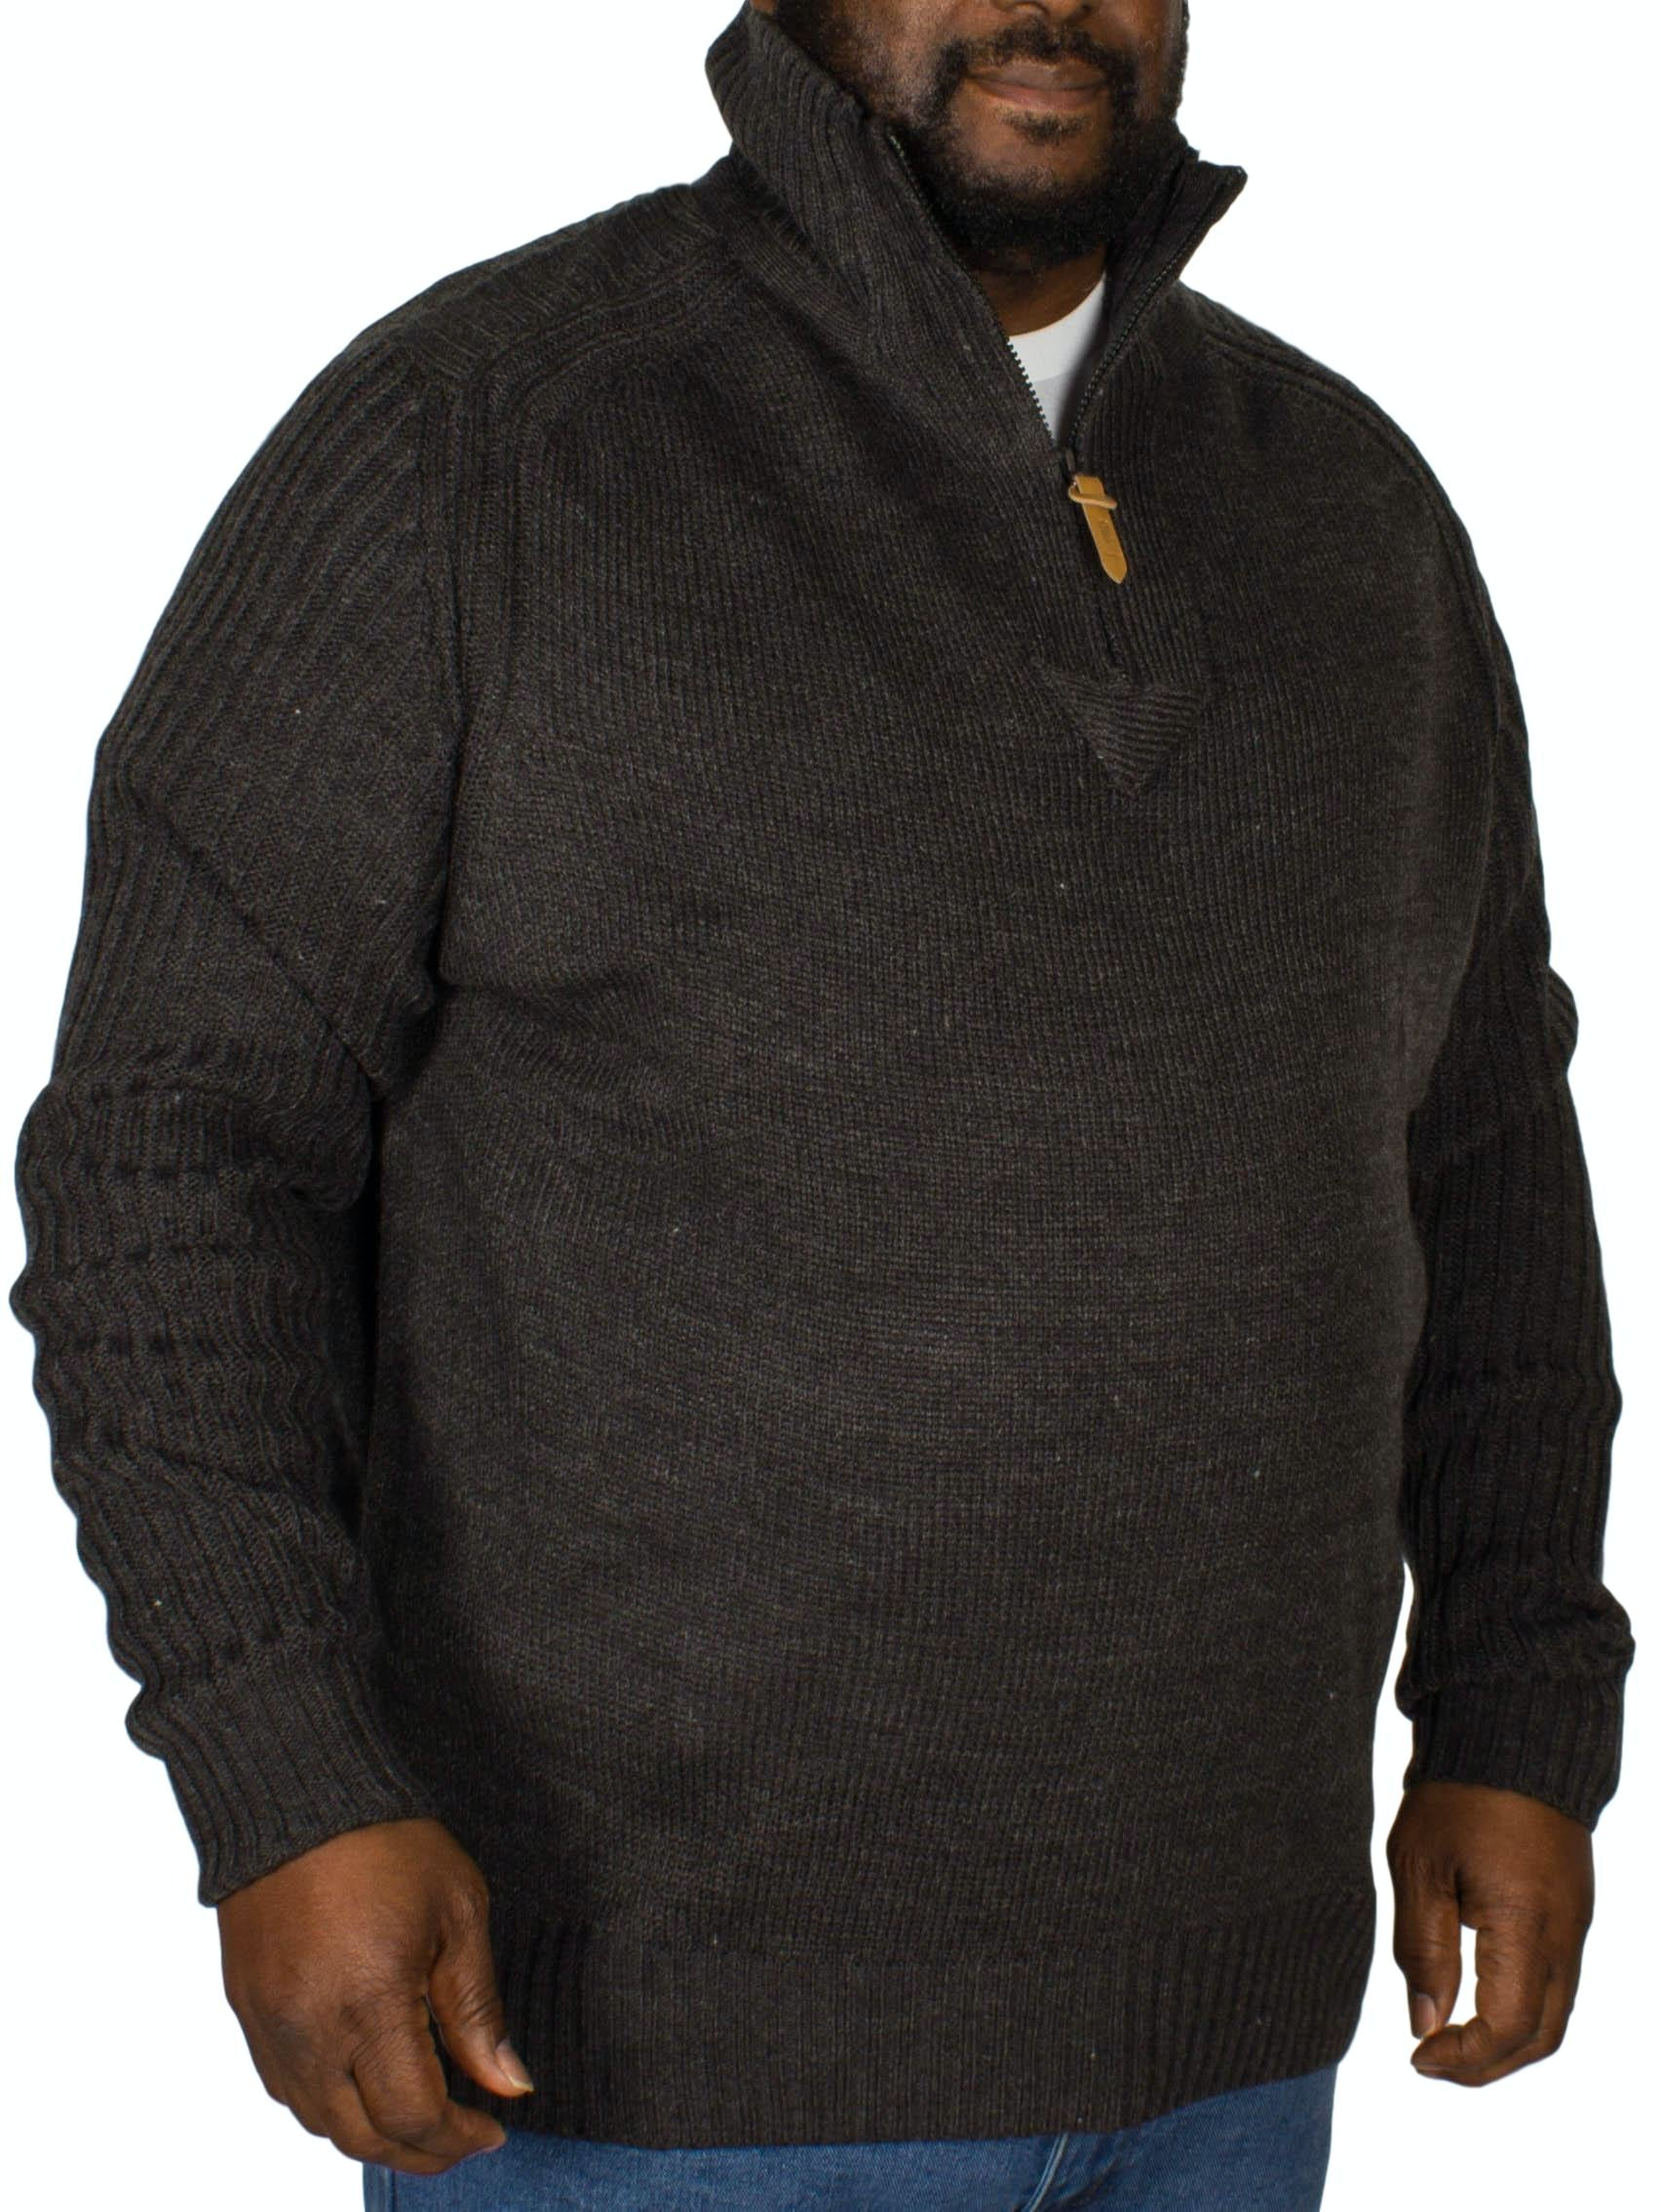 D555 Vito Half Zip Sweater Charcoal